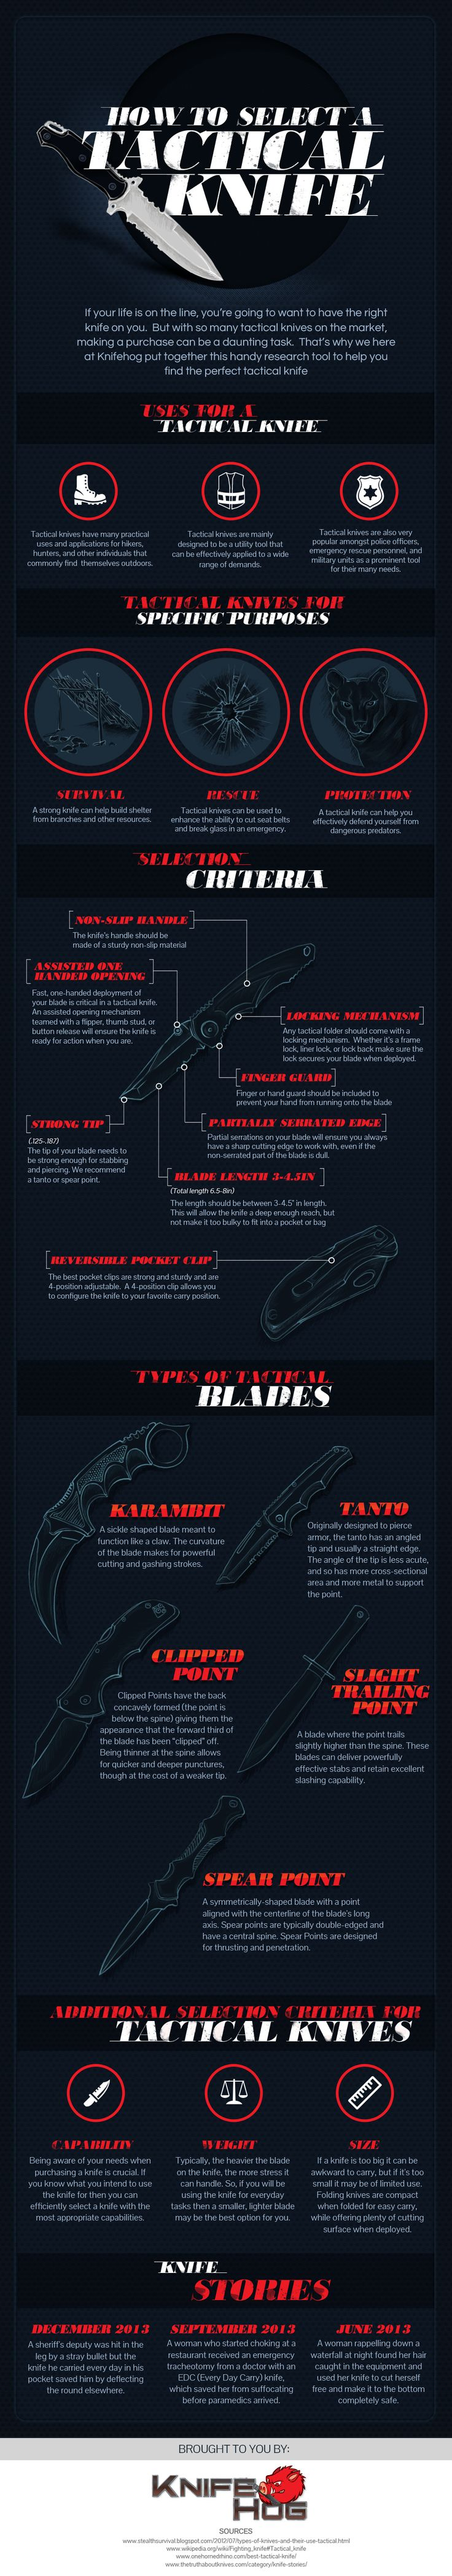 How to Select a Tactical Knife | Information on survival knives and survival blades at survivallife.com #bestsurvivalknife #bestsurvivalblade